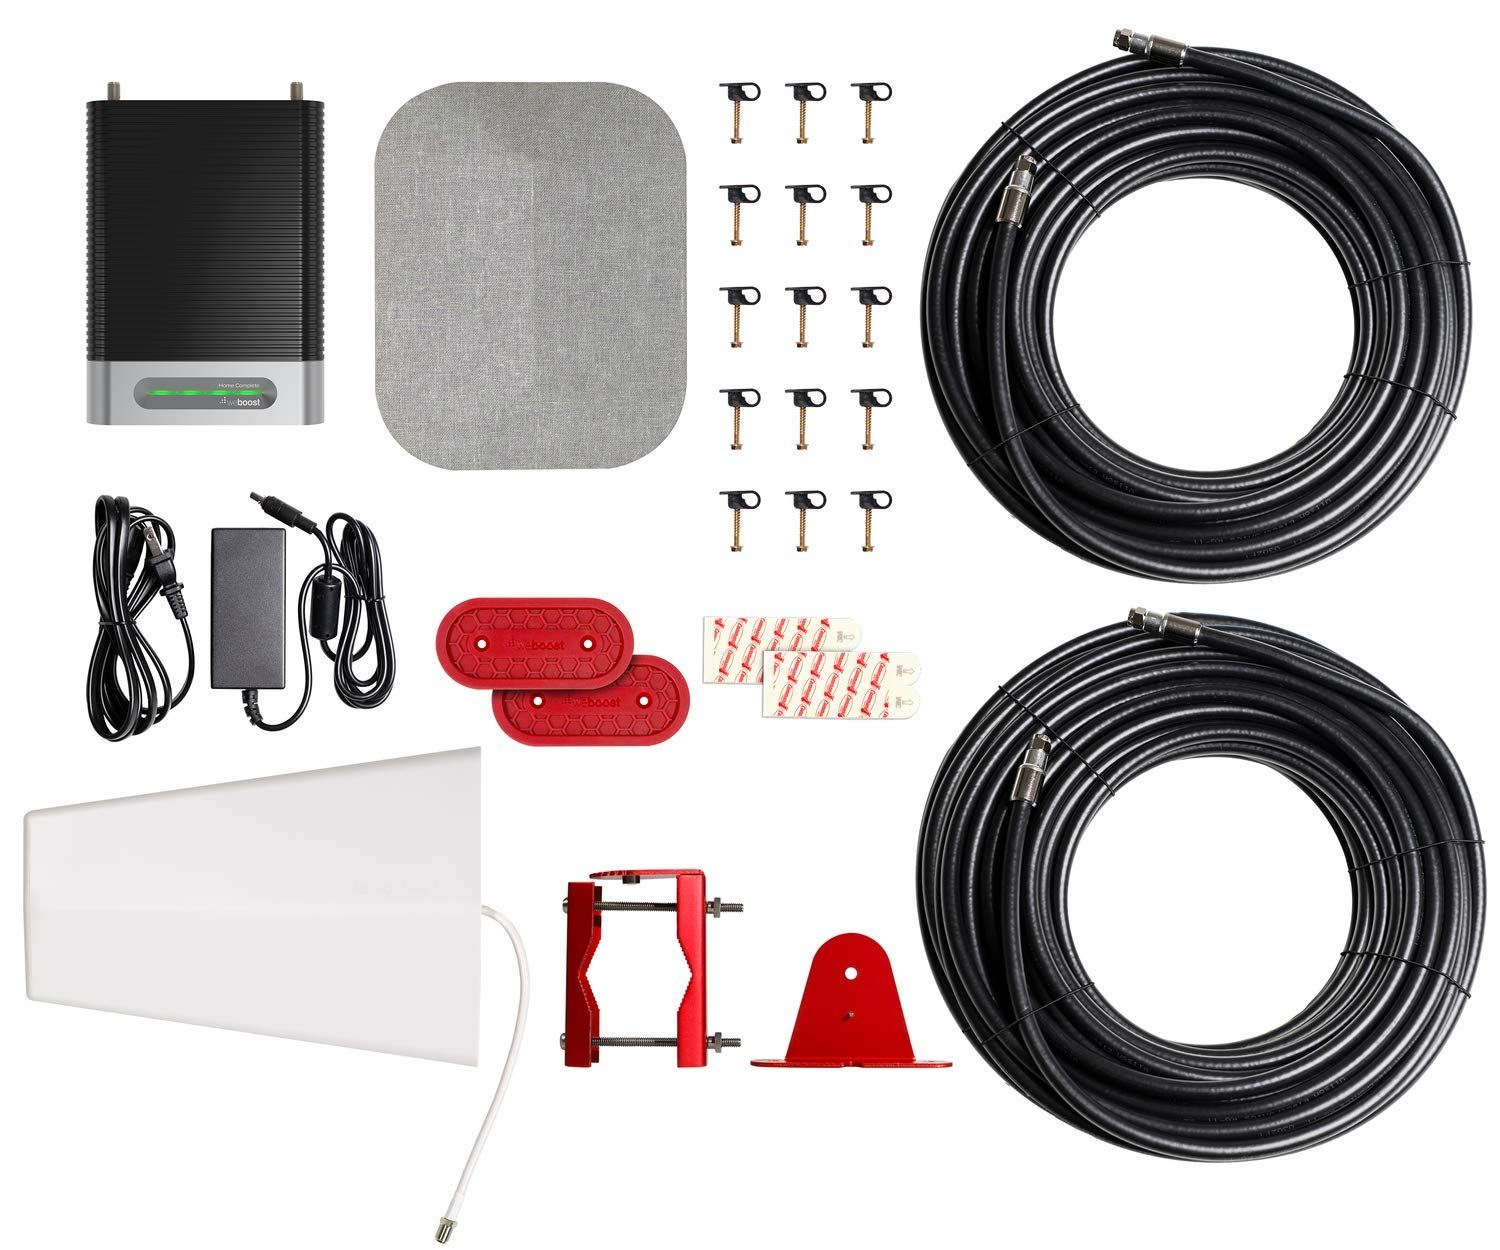 Cell Signal Booster Kit for Whole Home up to 7,500 sq - Maximum Cell Signal Boost Allowed by Industry Canada weBoost Home Complete 650145 Cell Phone Signal Booster ft